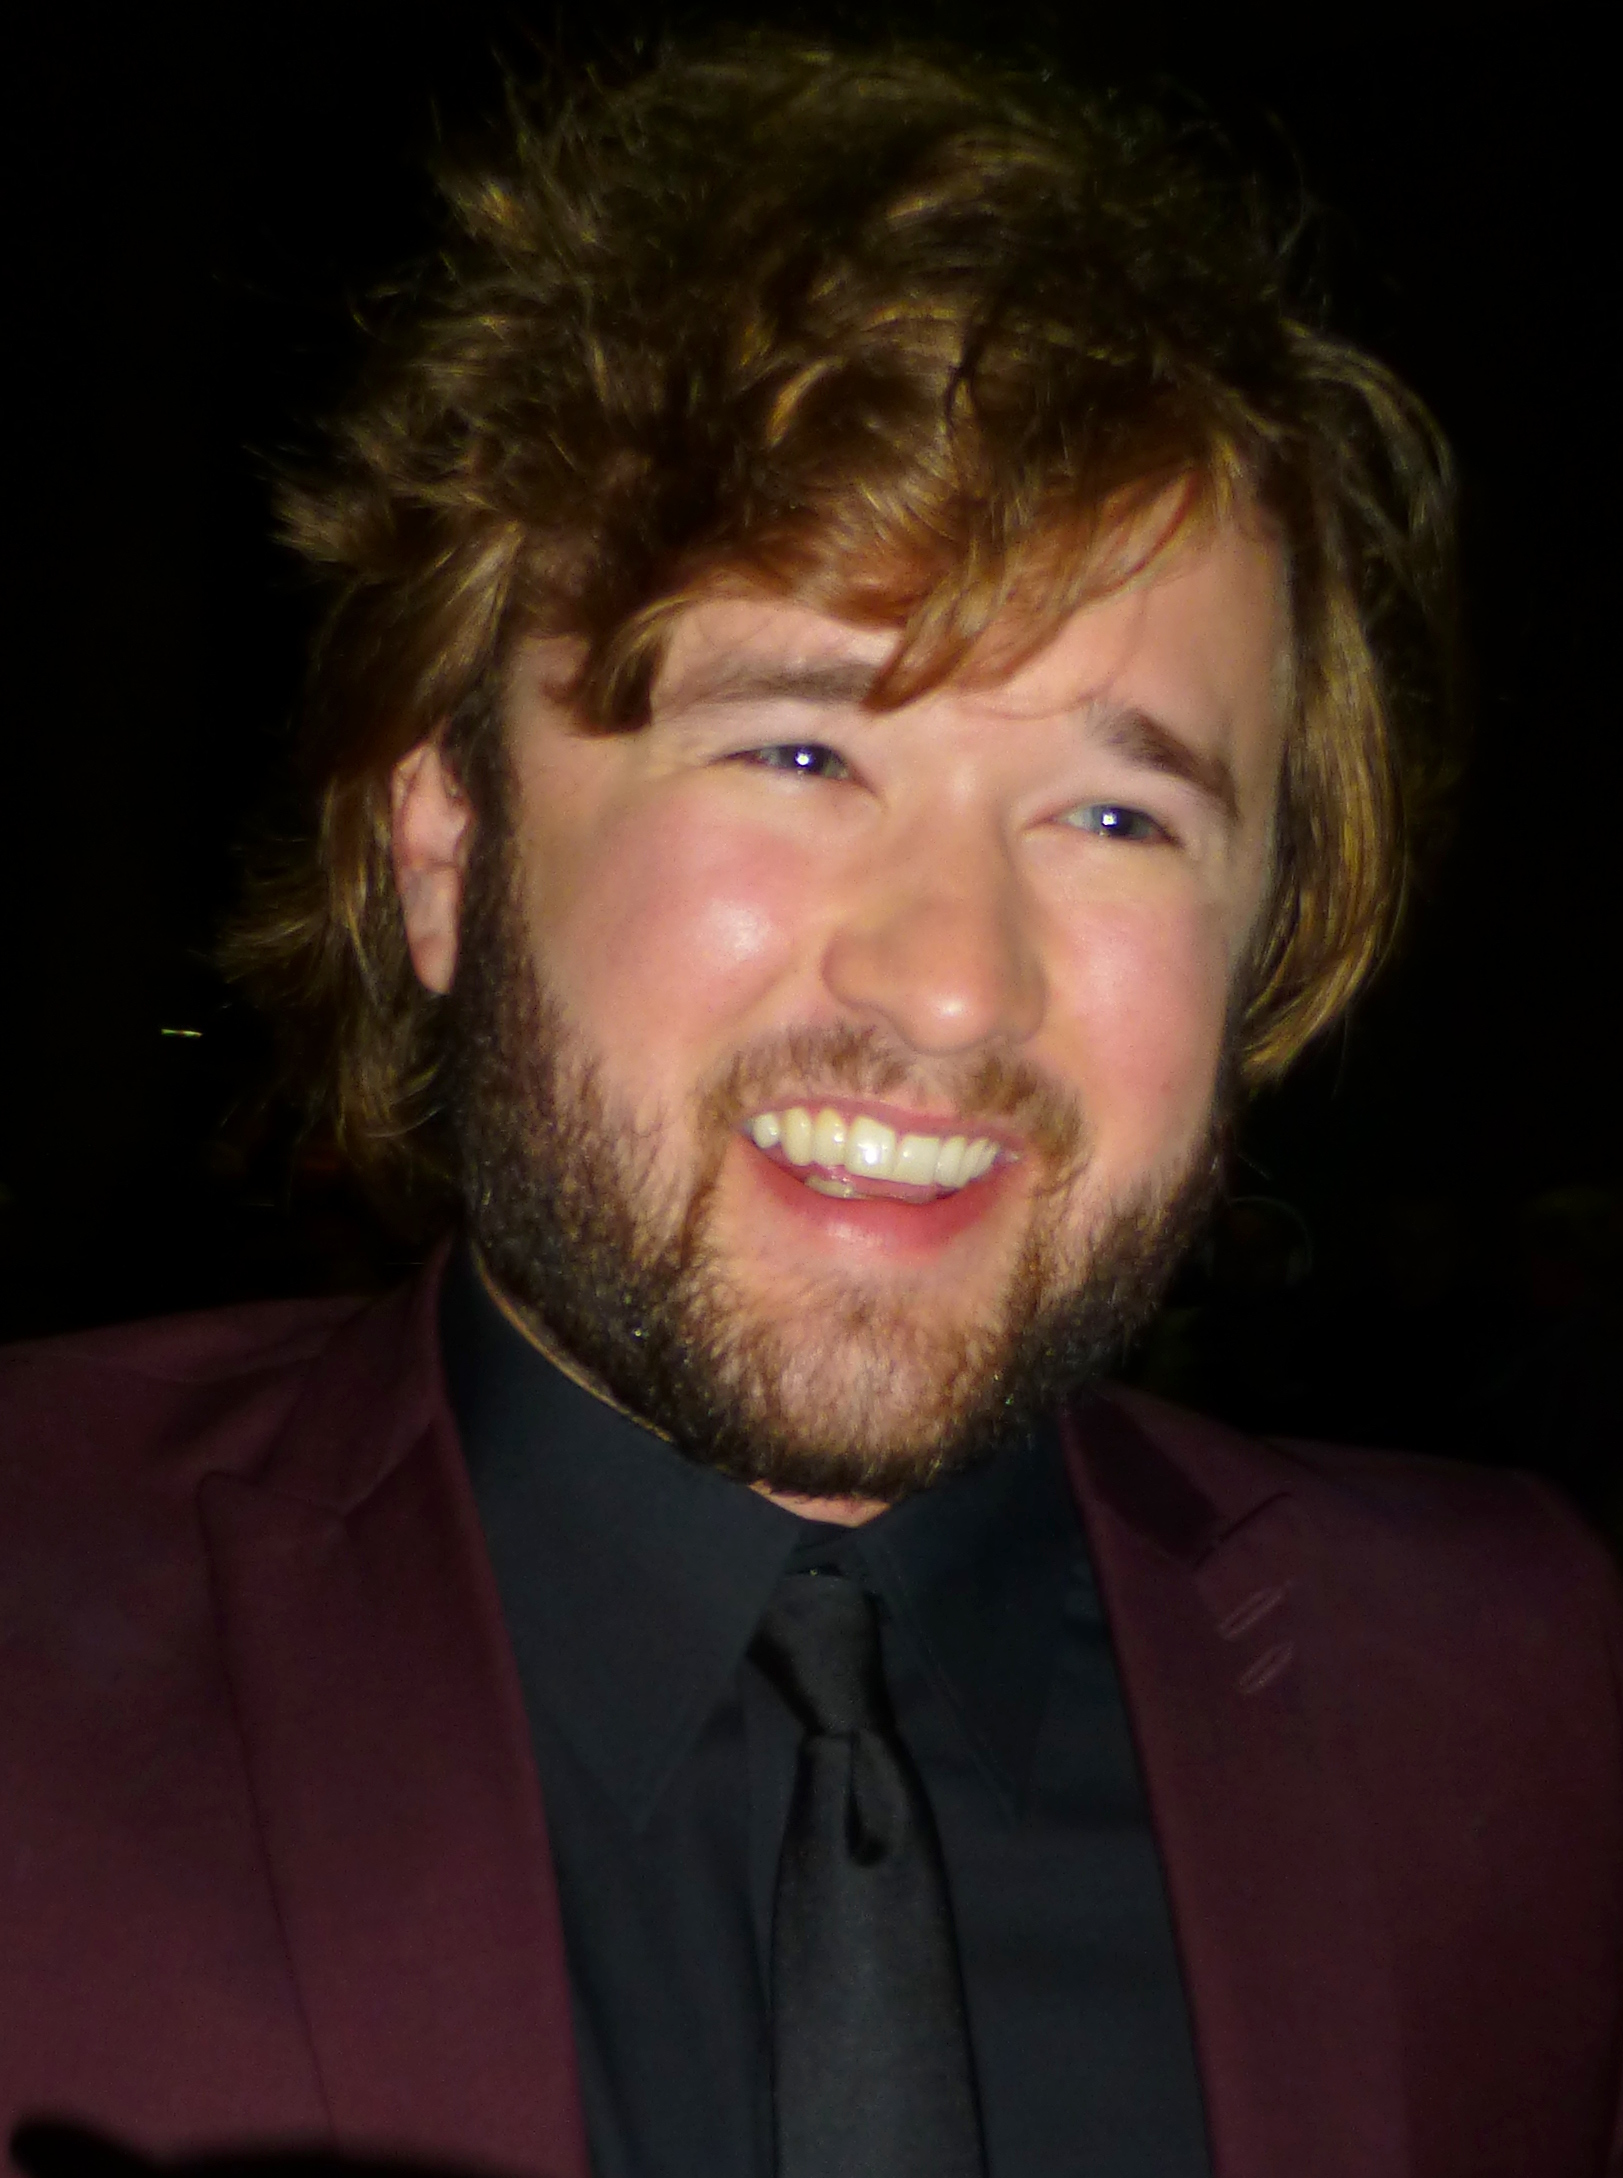 haley joel osment pic: